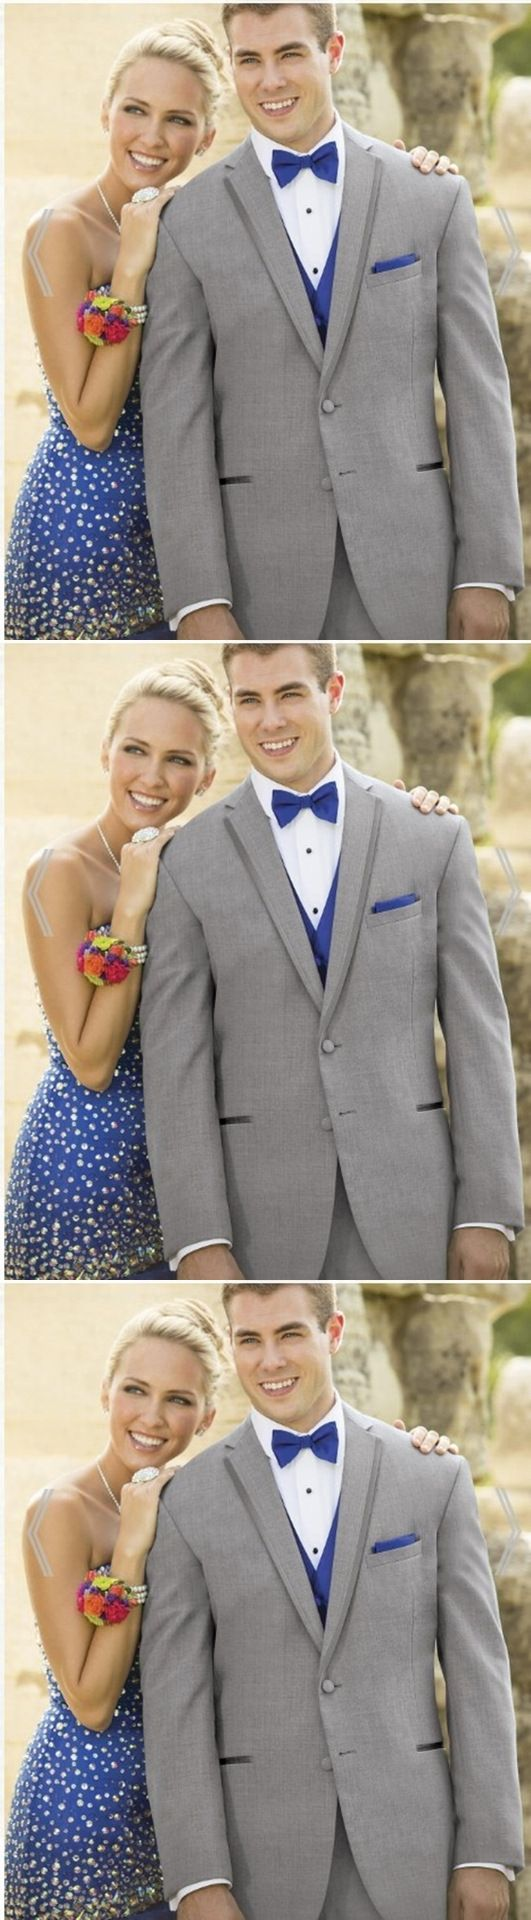 Fashionable Two Button Light Grey Groom Tuxedos Groomsmen Men's Wedding Prom Suits Custom Made (Jacket+Pants+Vest+Tie)